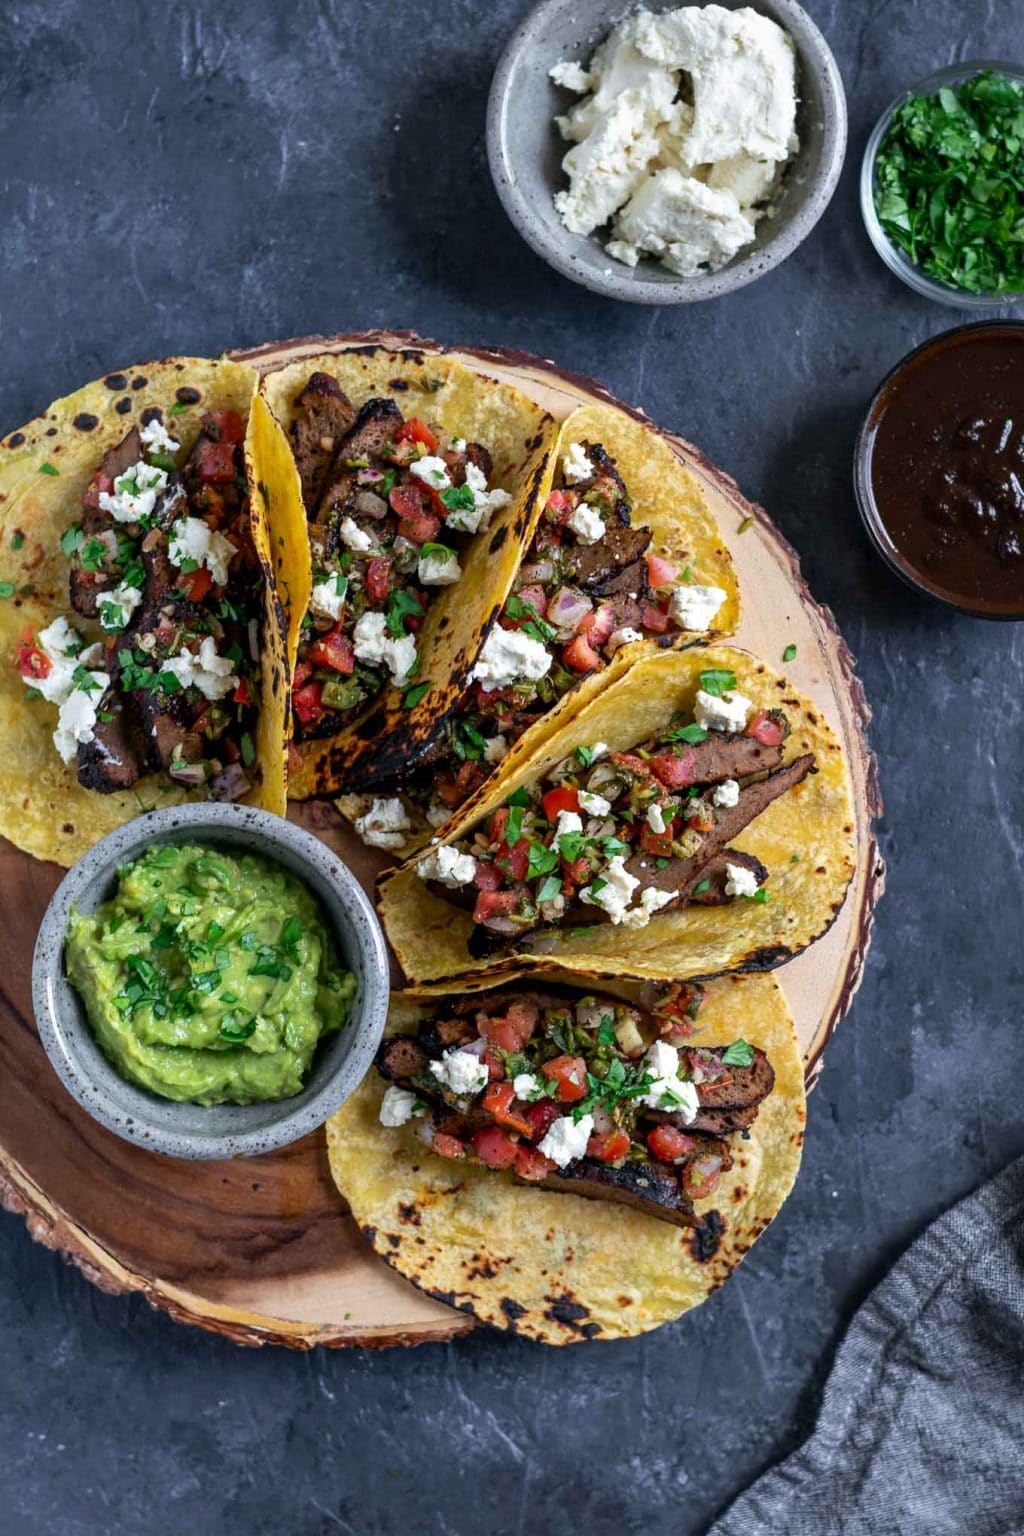 Vegan seitan carne asada tacos topped with pico de gallo and vegan queso fresco with guacamole and extra marinade, queso fresco, and cilantro to serve. 5 tacos assembled on a platter.